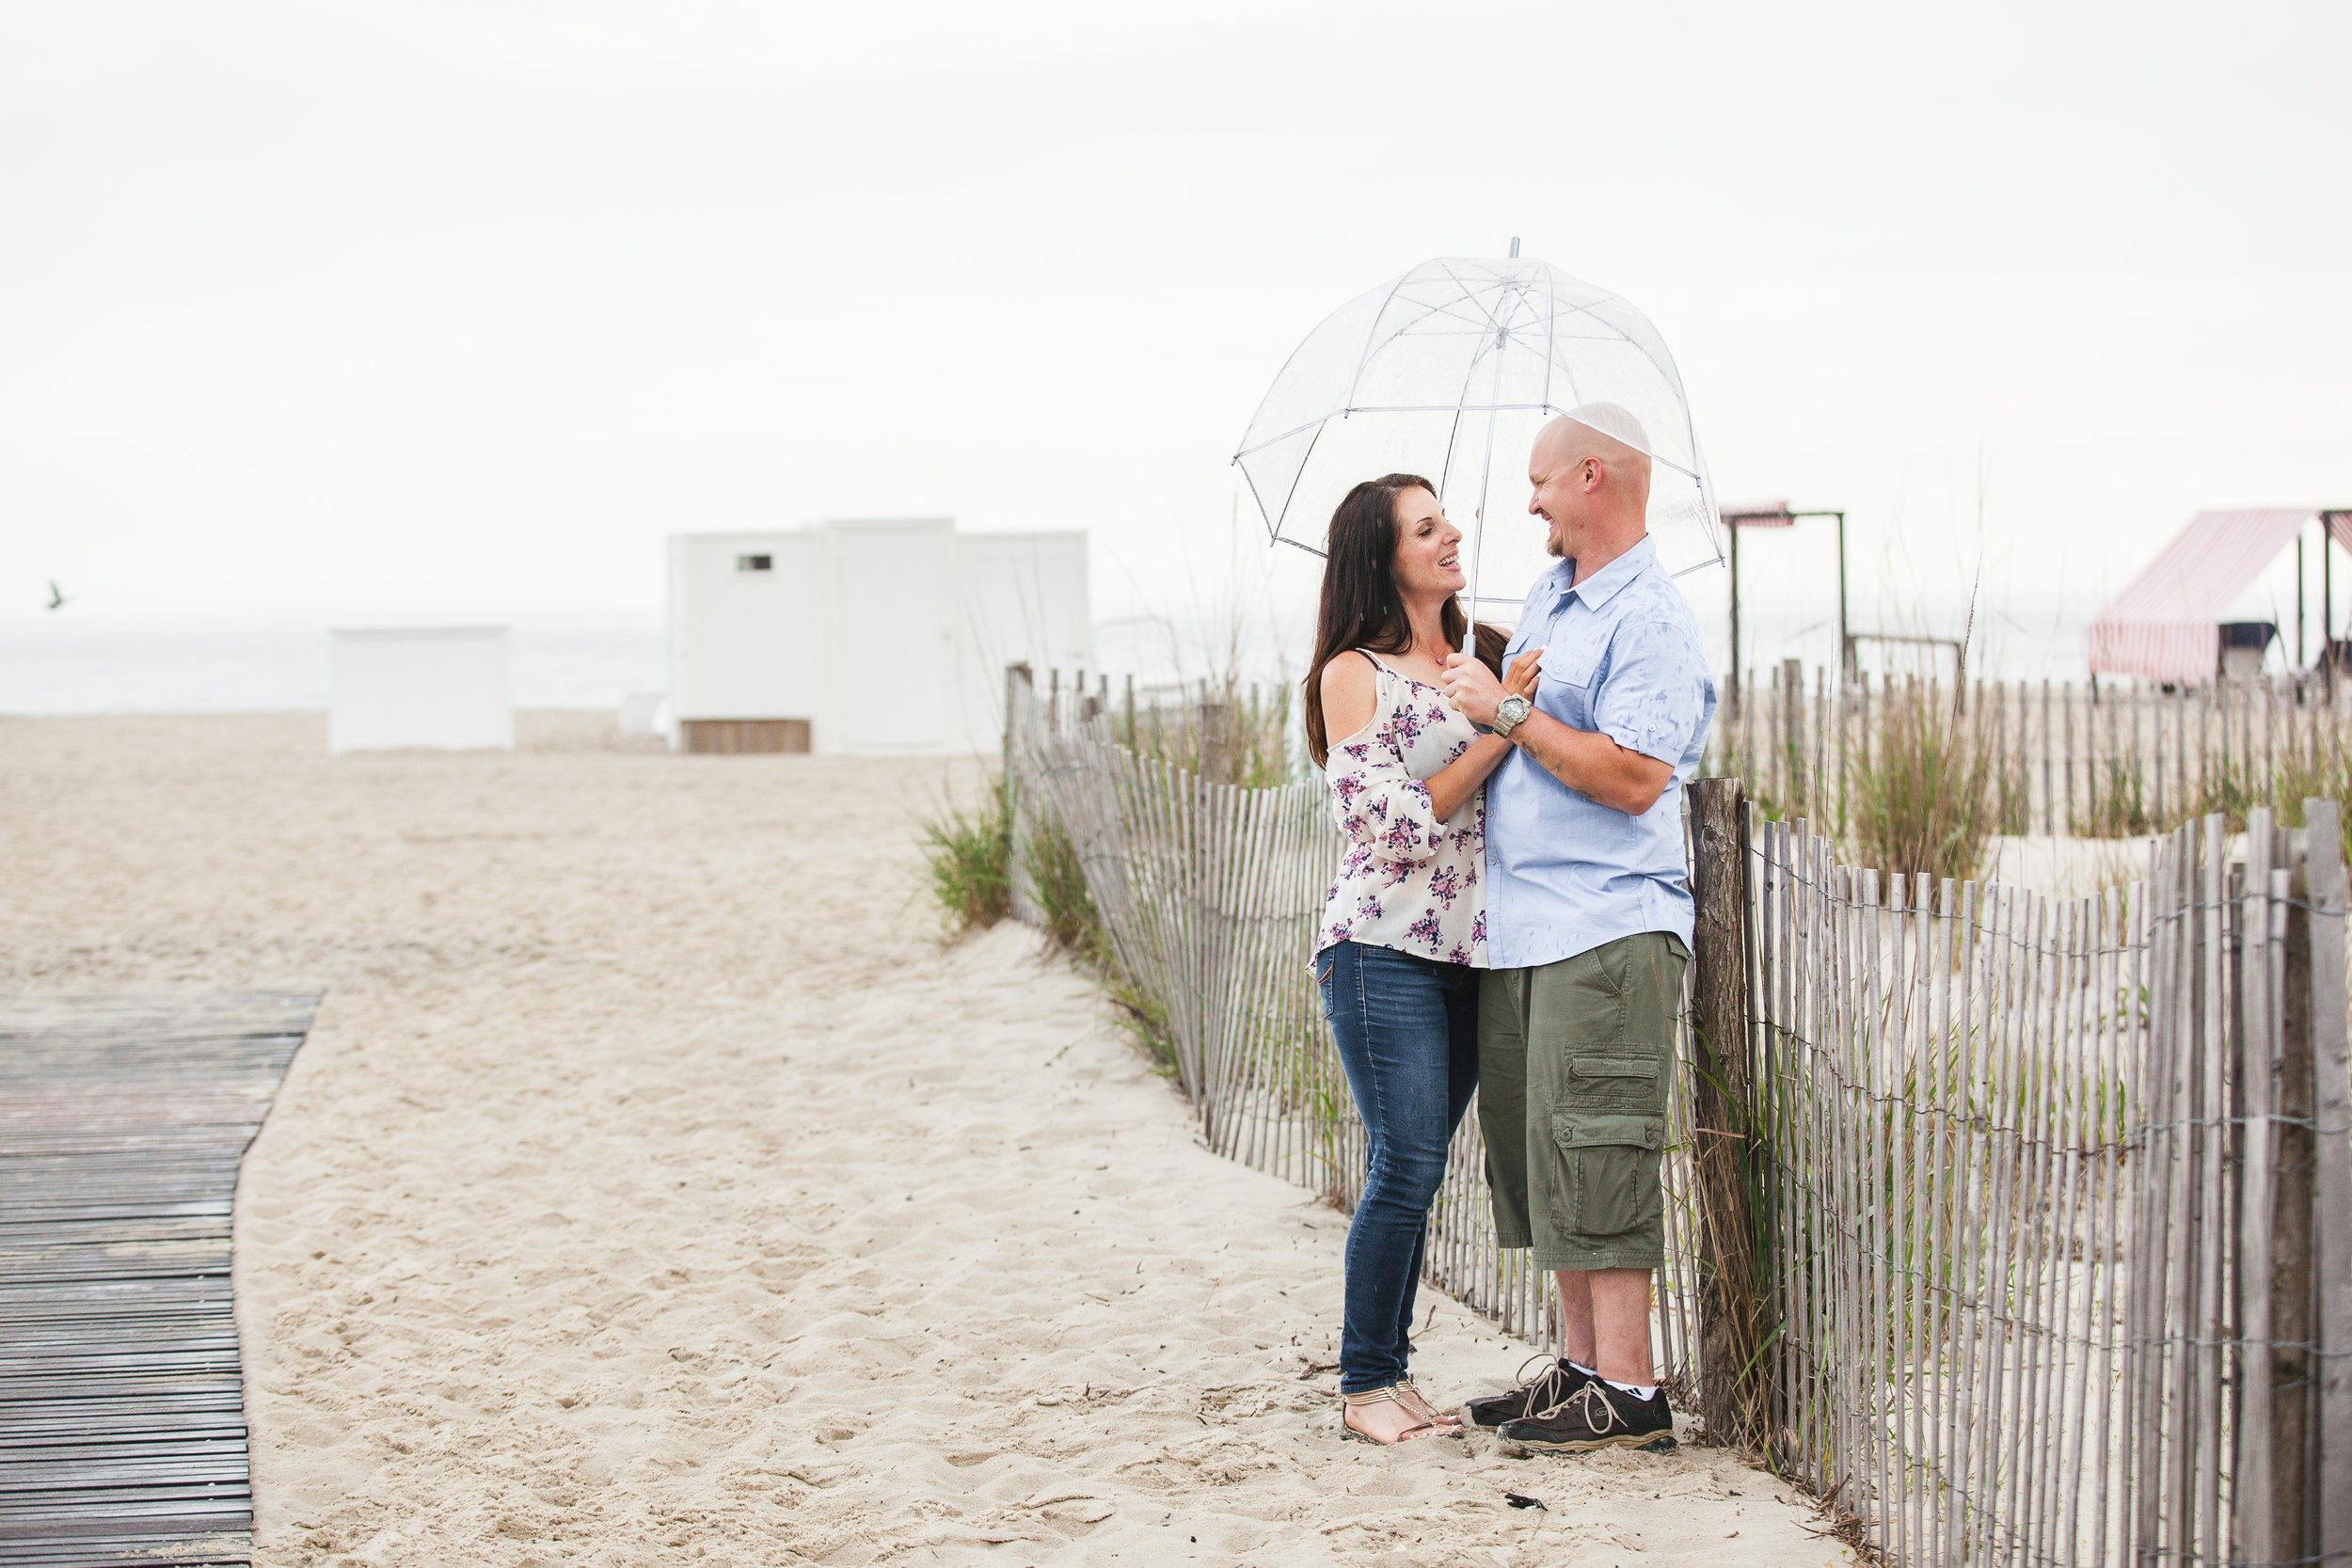 StaceyandJohnEngagementPrints-58.jpg